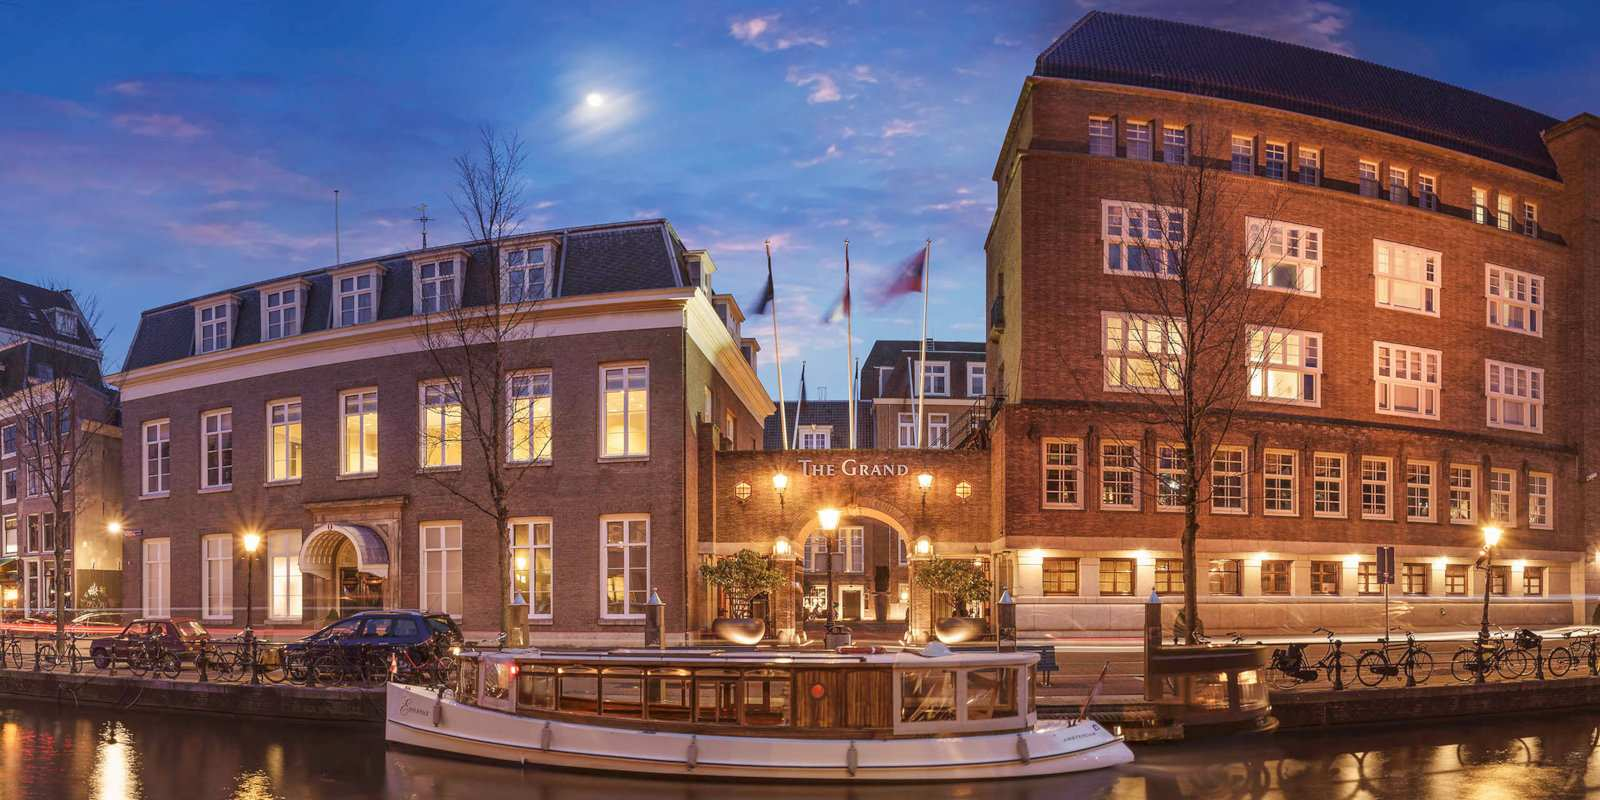 Gay hotels in Amsterdam - Sofitel Legend the Grand is very welcoming to LGBTQ travellers to Amsterdam.